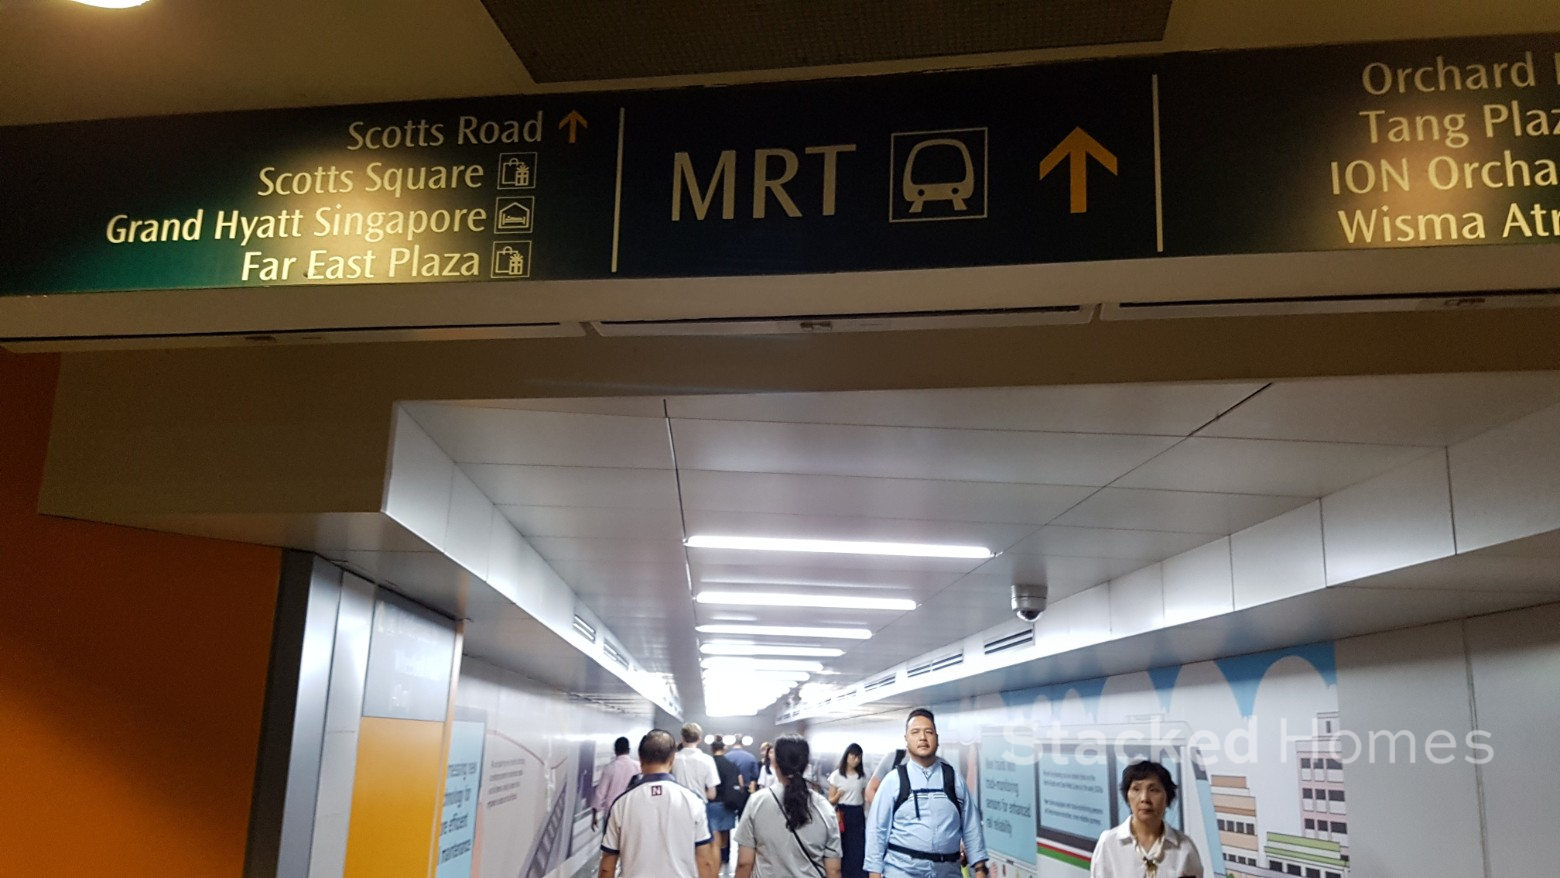 orchard towers mrt